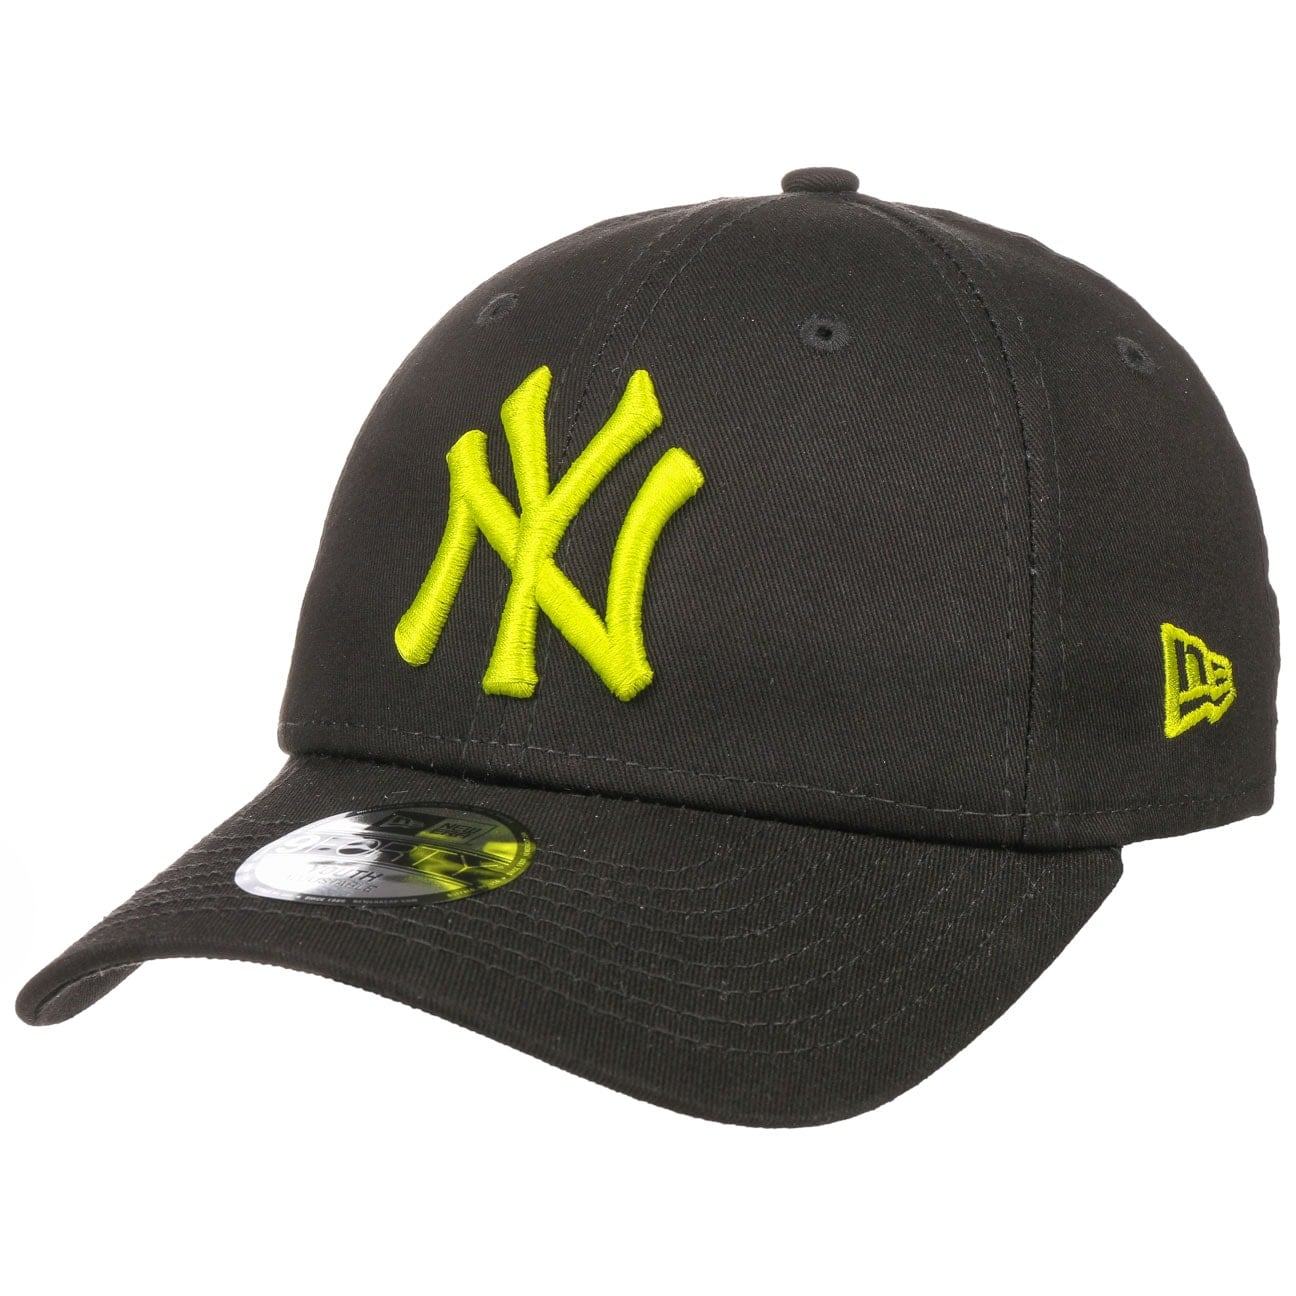 940 League Ess KIDS Yankees by New Era